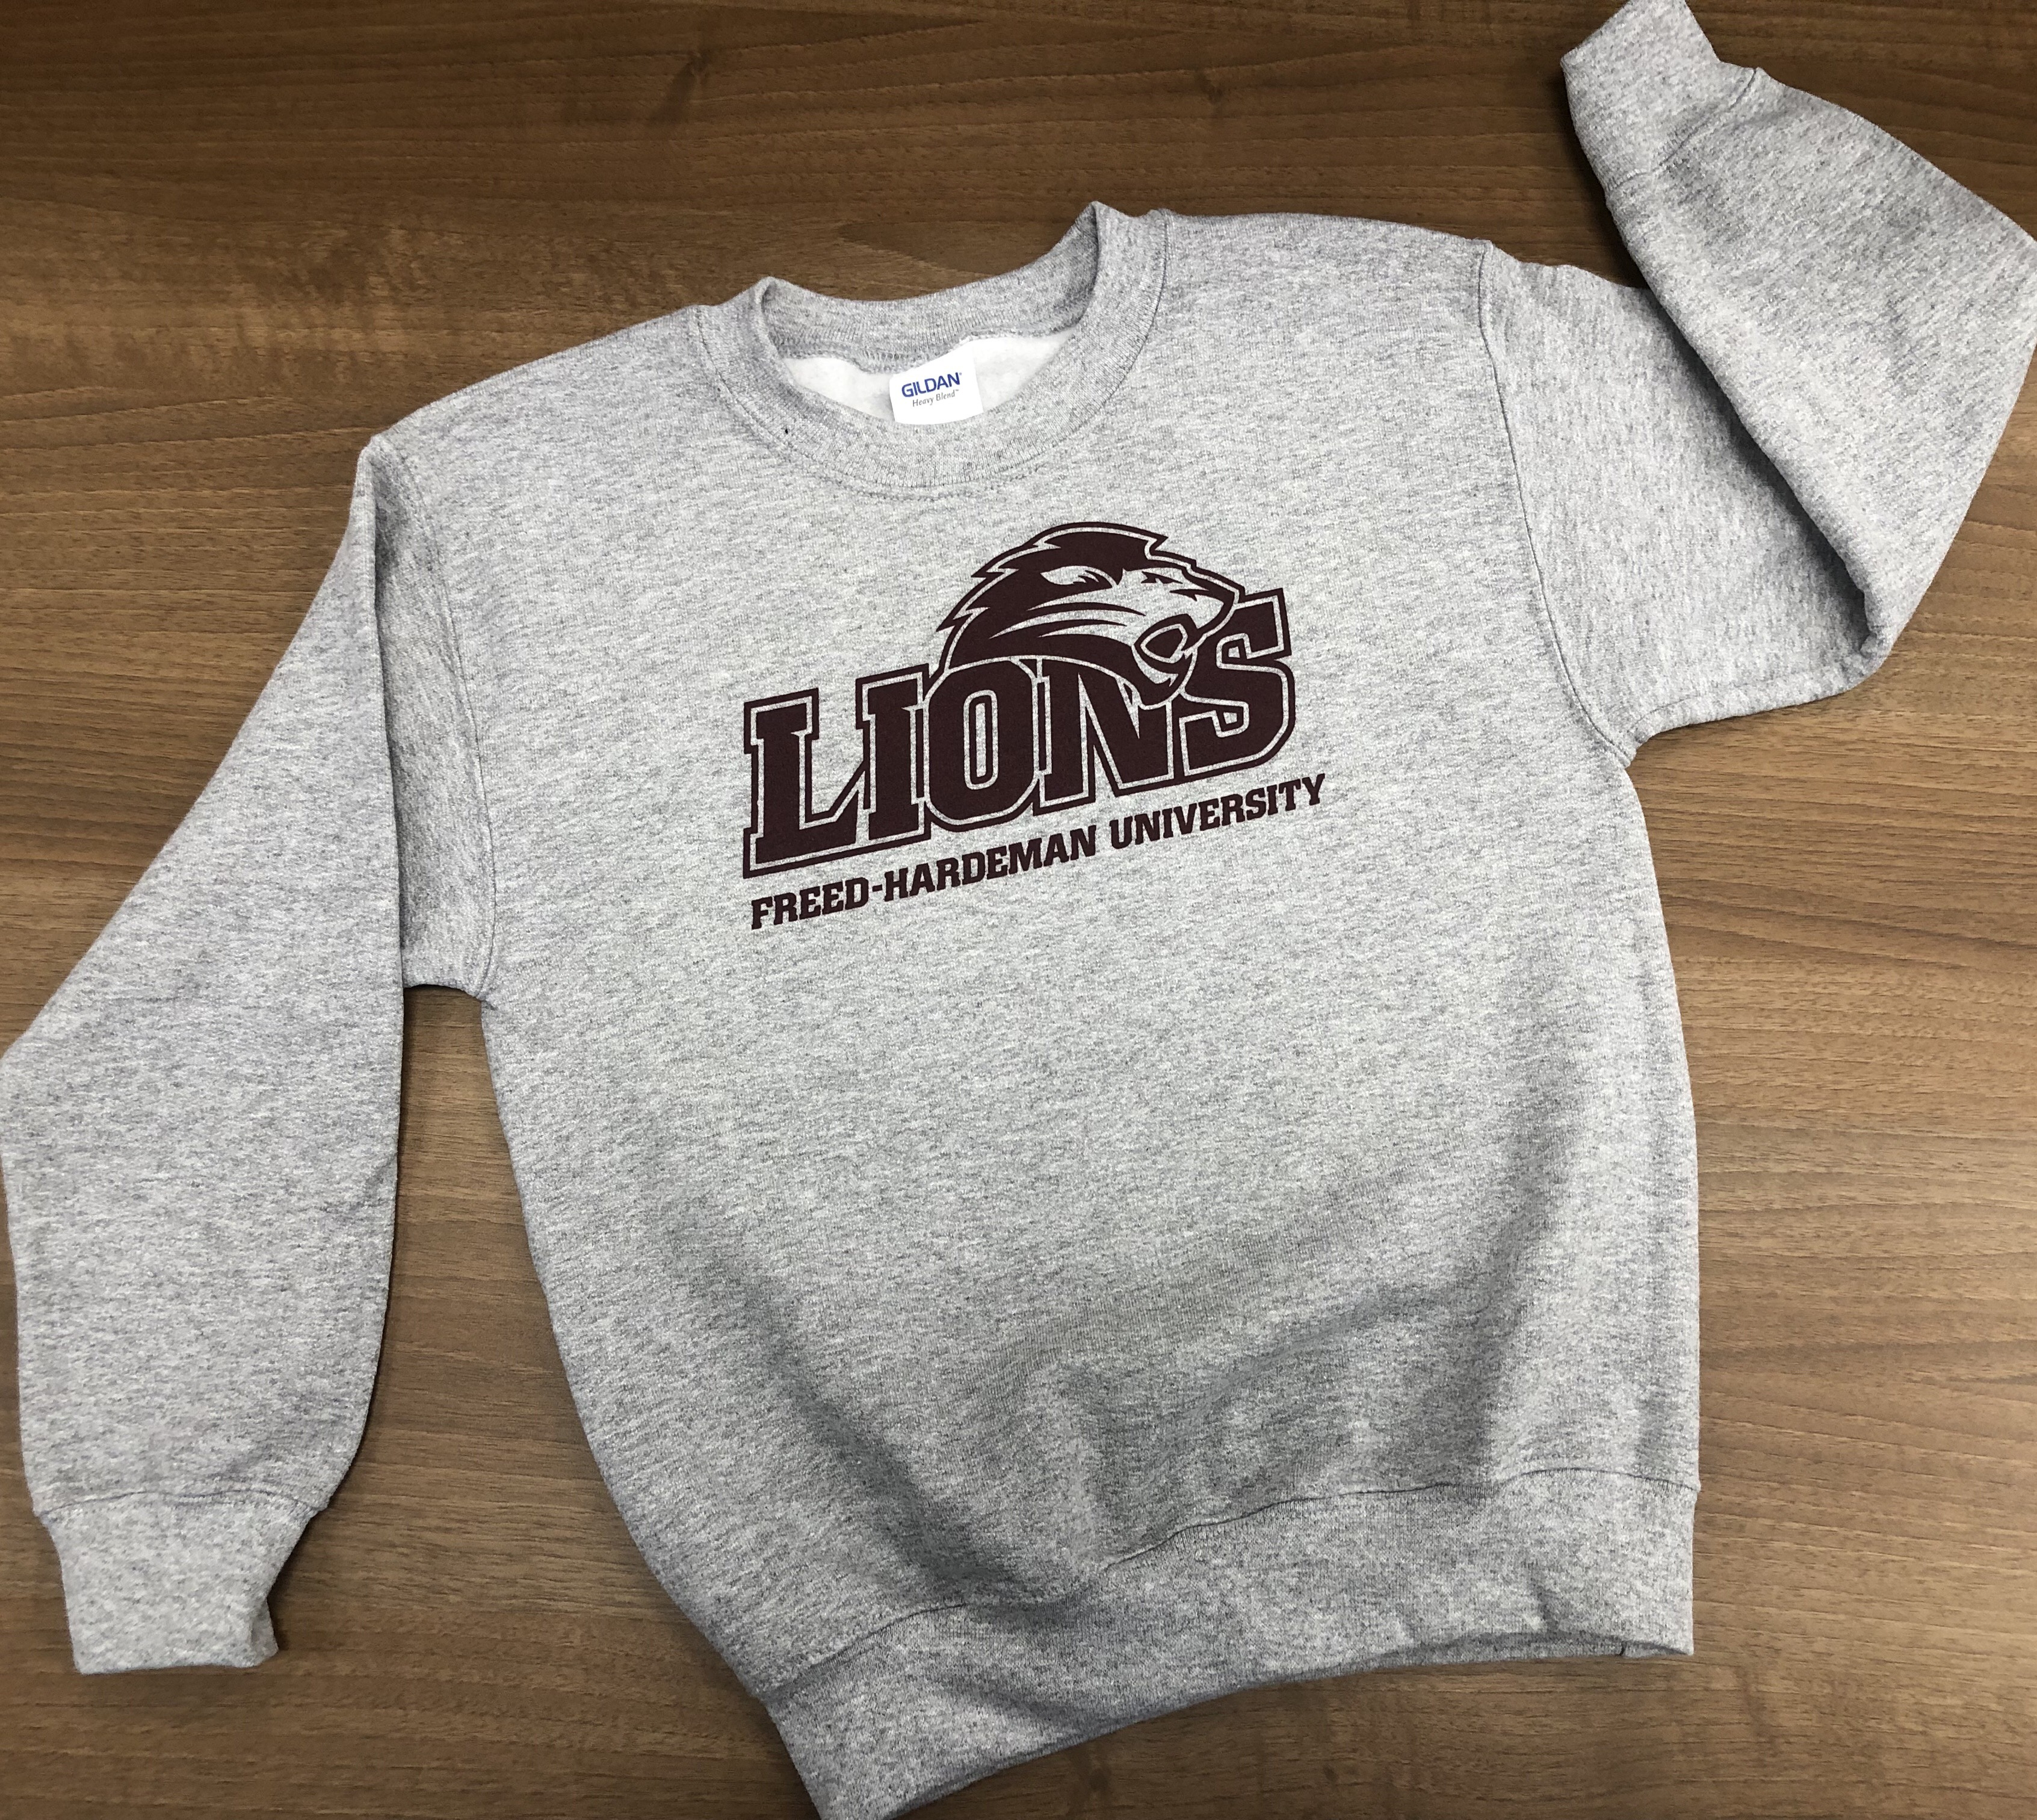 Youth Crew Neck FHU Lions Sweatshirt